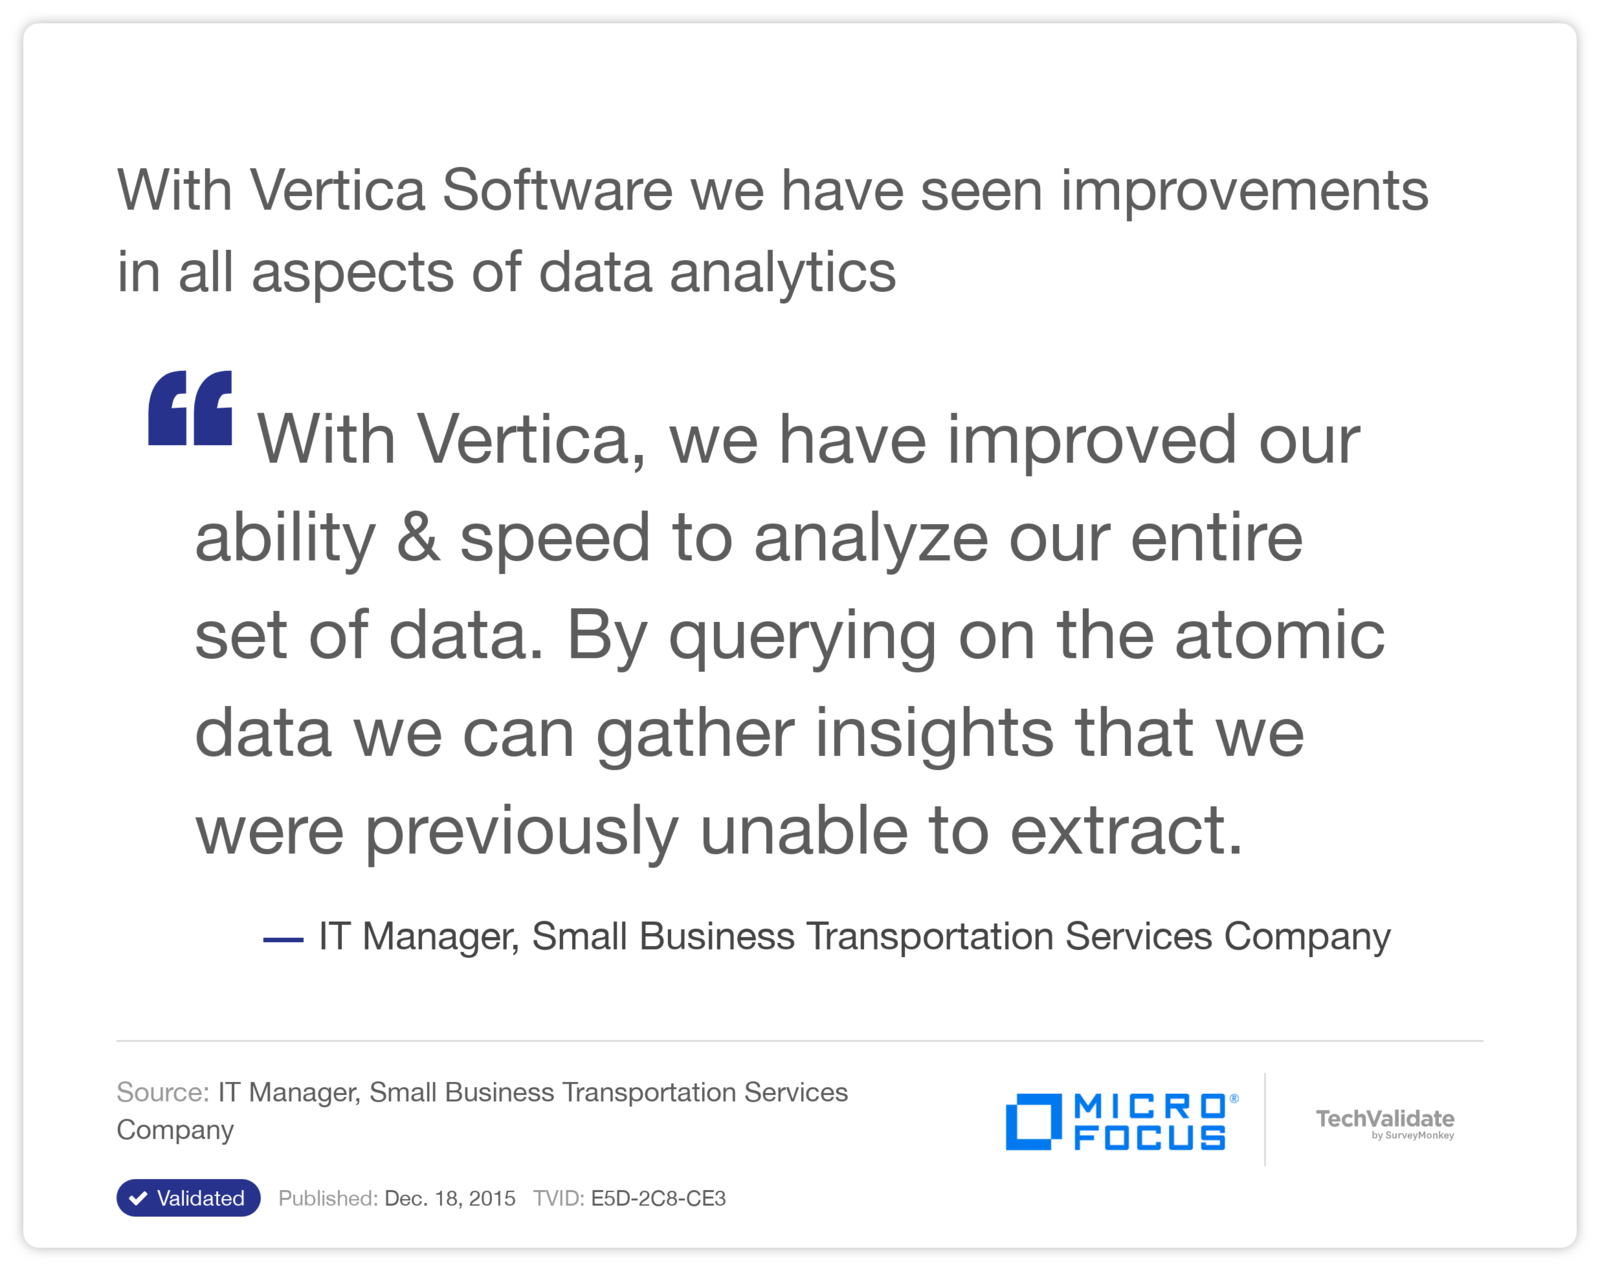 With Vertica Software we have seen improvements in all aspects of data analytics